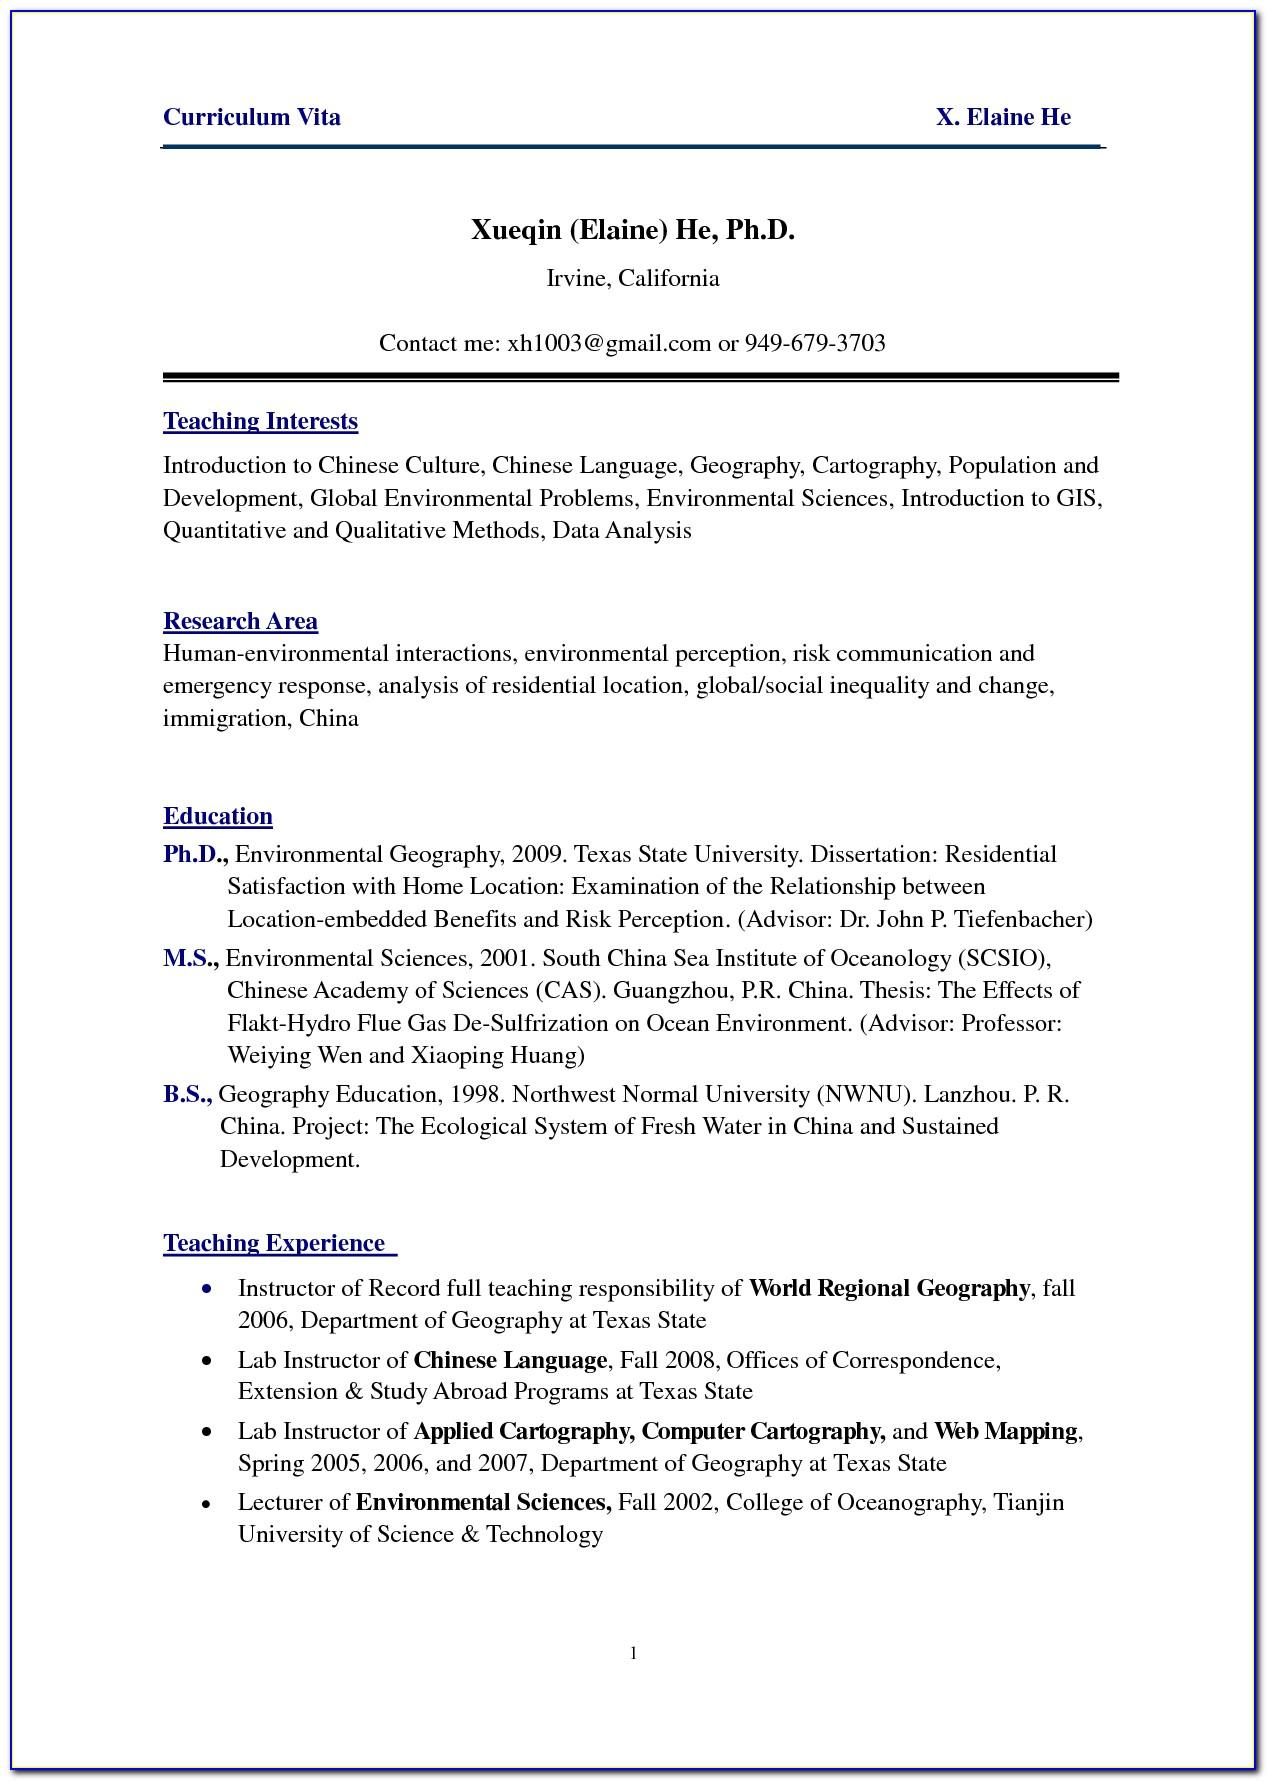 Resume Templates For Nurse Practitioners